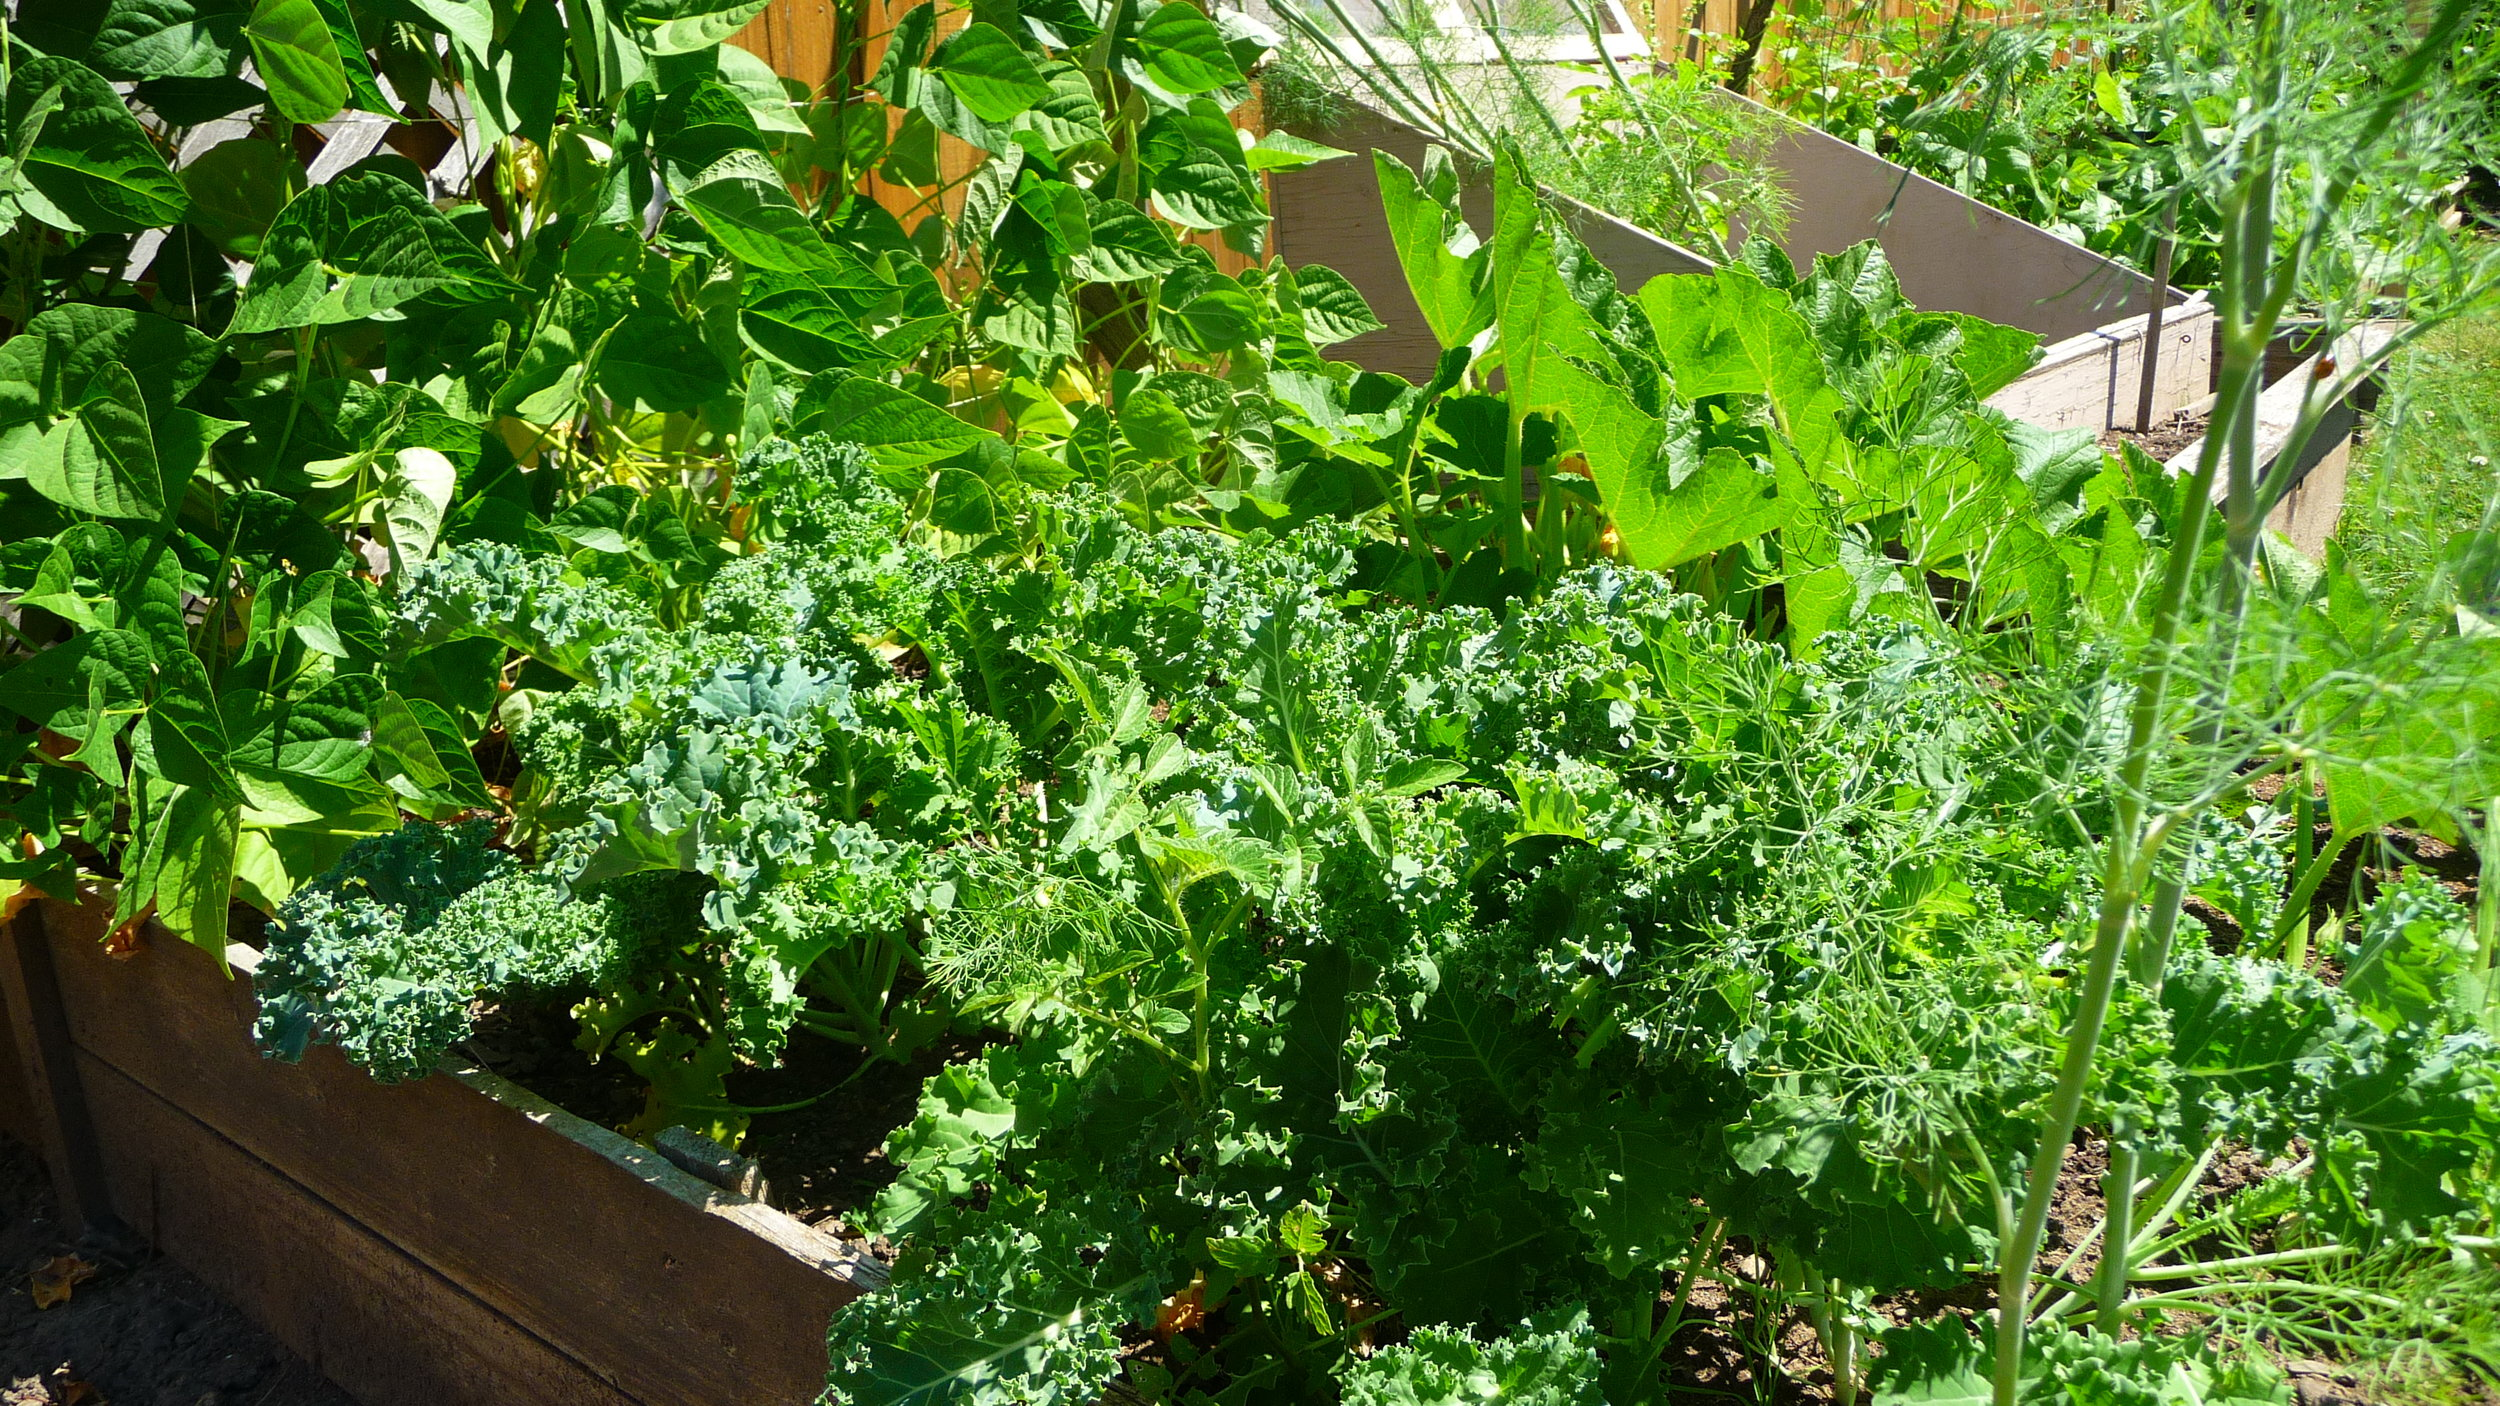 Nutrient-packed kale growing in our garden amongst dill and other treats.